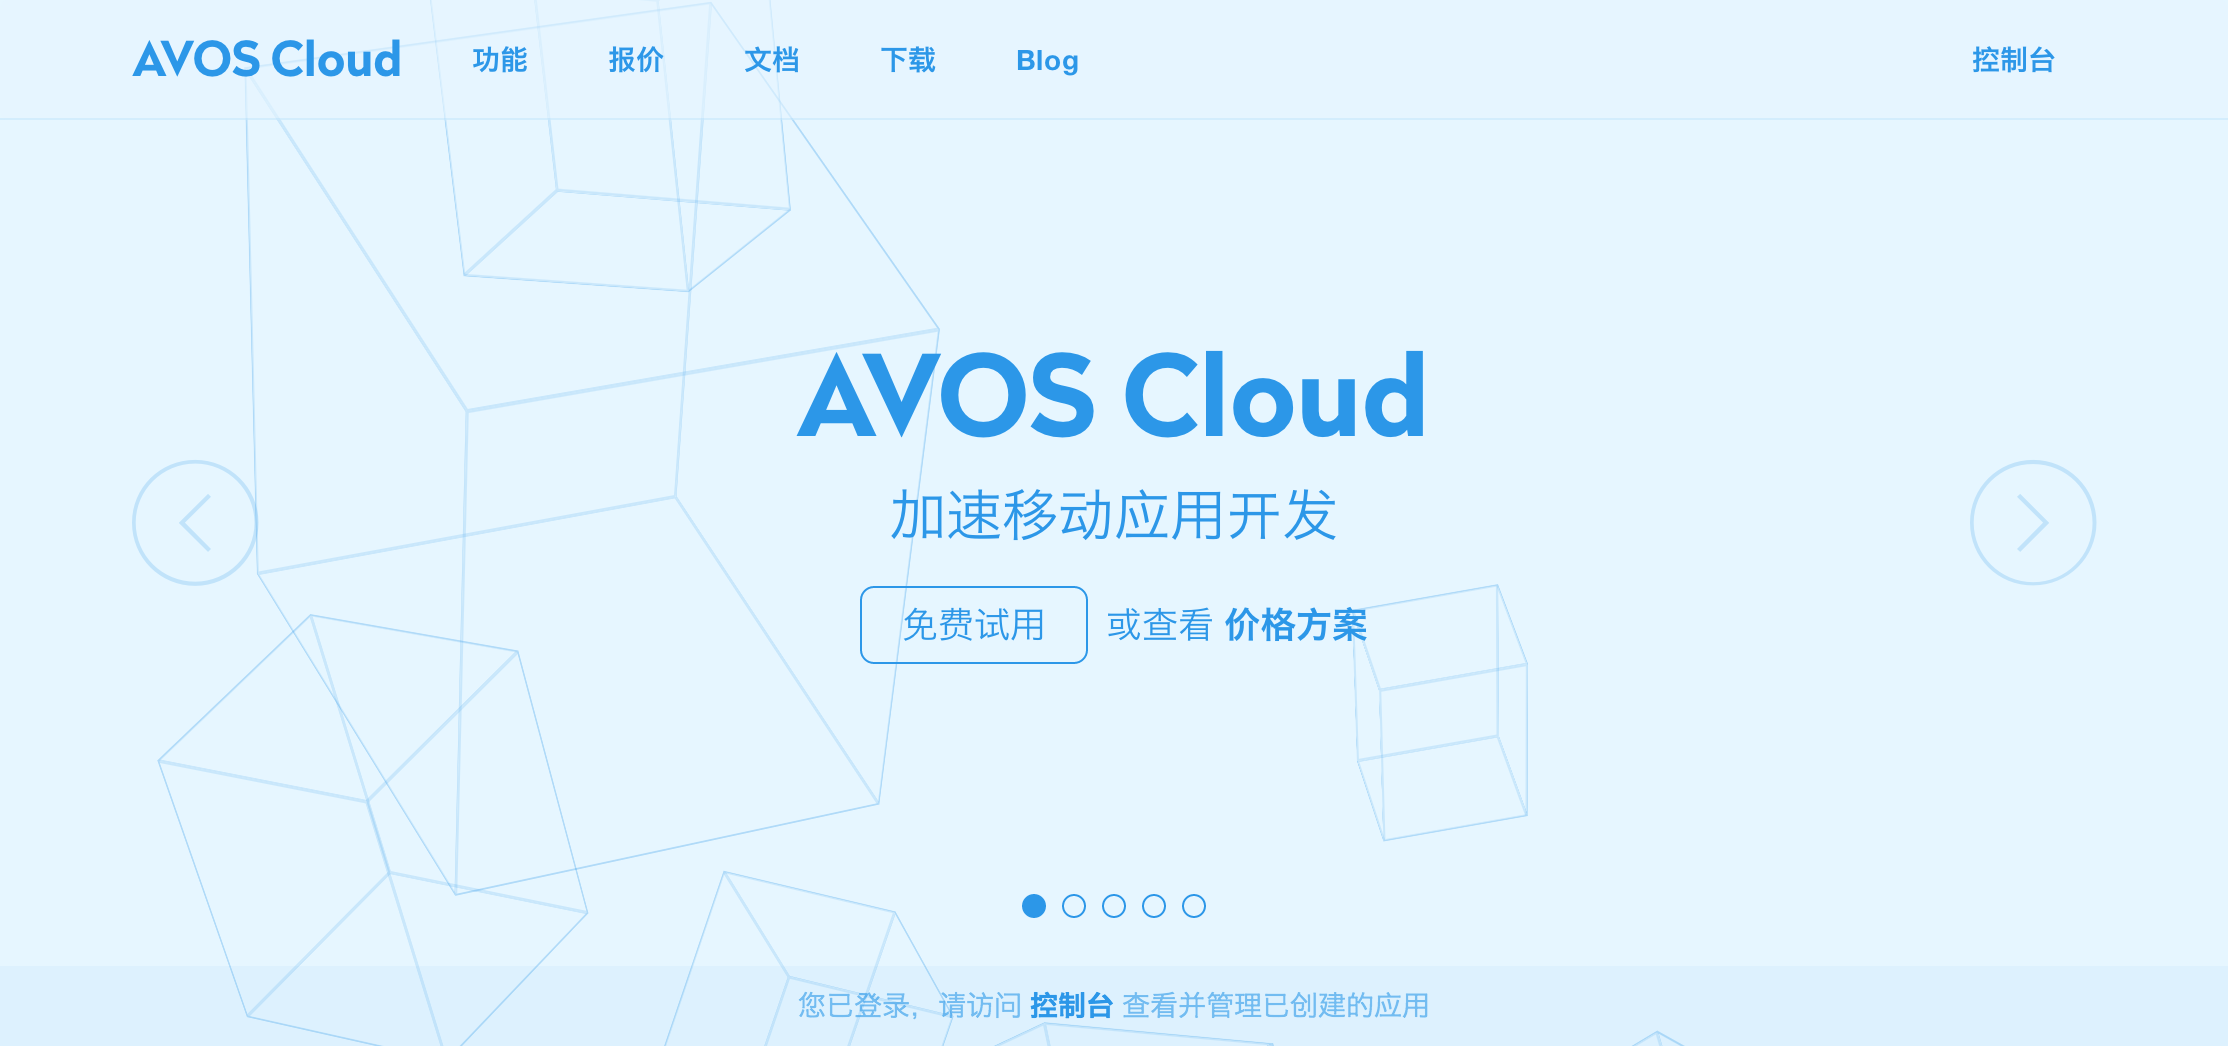 AVOS Cloud Homepage Slides #1